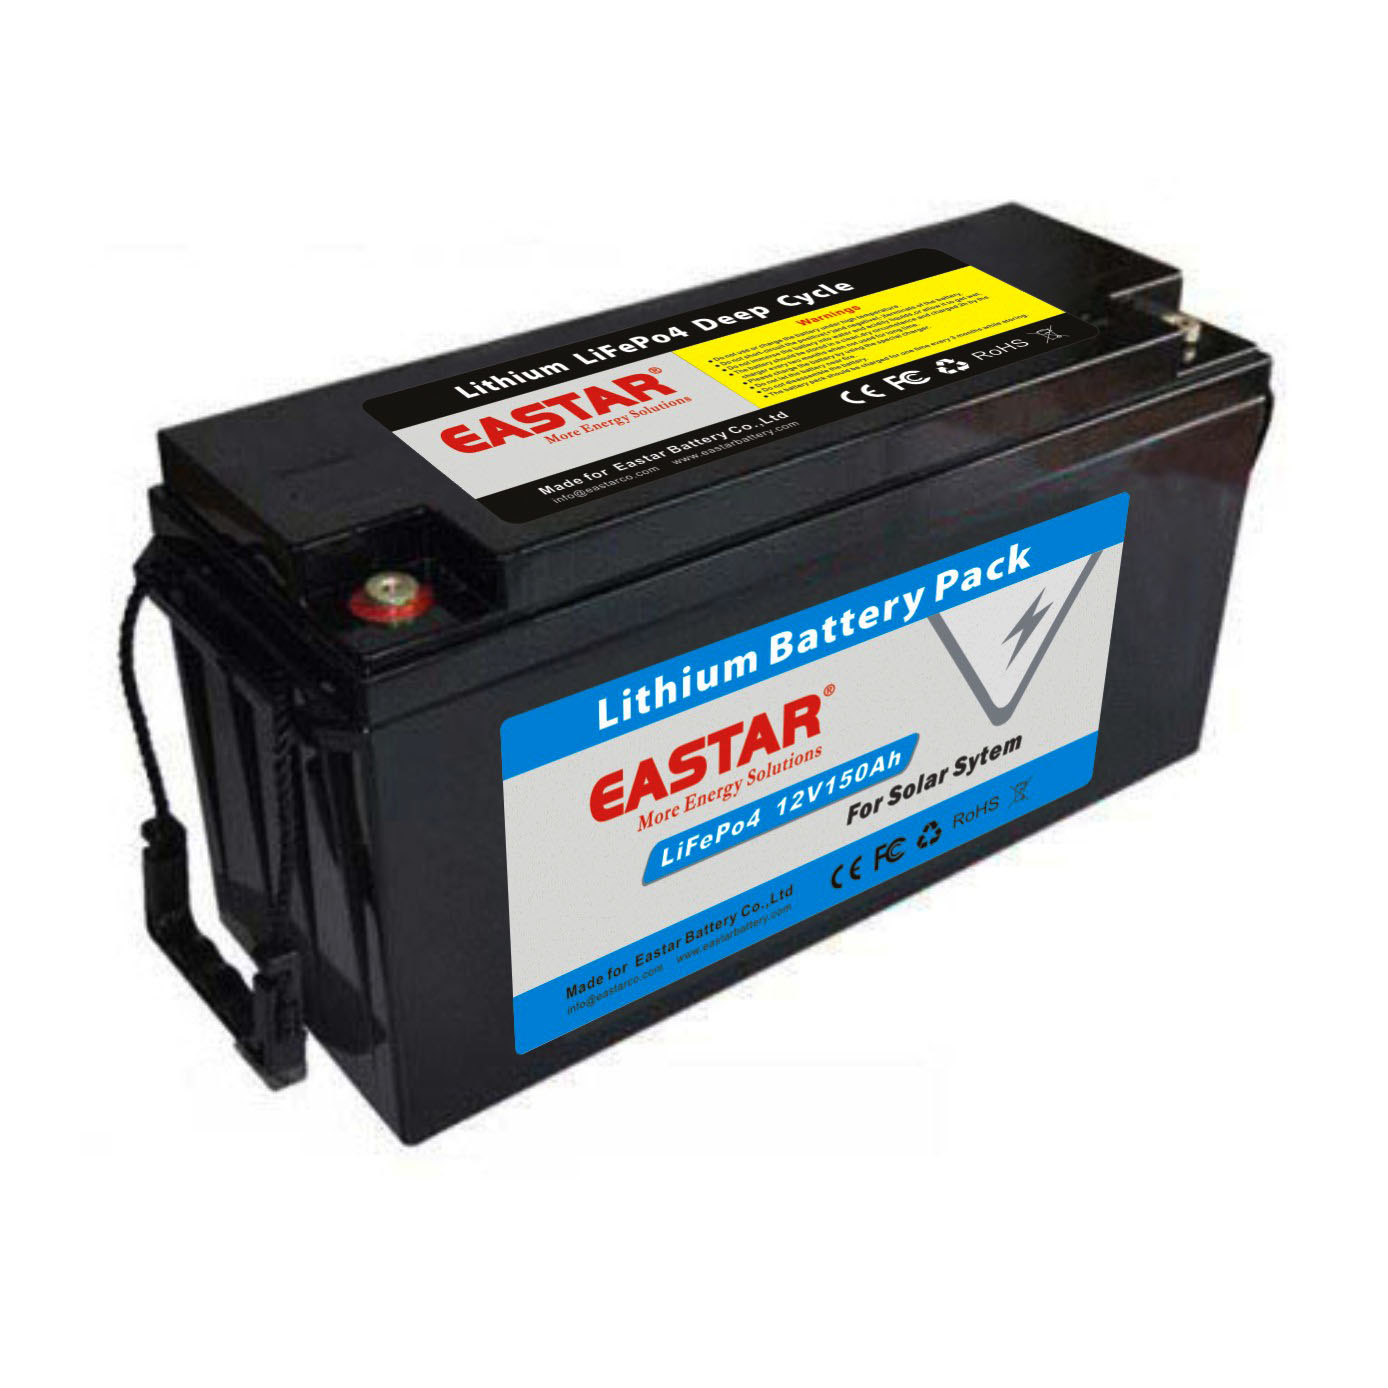 Lithium Ion Car Battery >> 12v Lithium Ion Car Battery Lithium Ion Battery 12v 150ah For Camping Car Buy Lithium Ion Battery 12v 150ah Lithium Ion Battery Packs For Camping